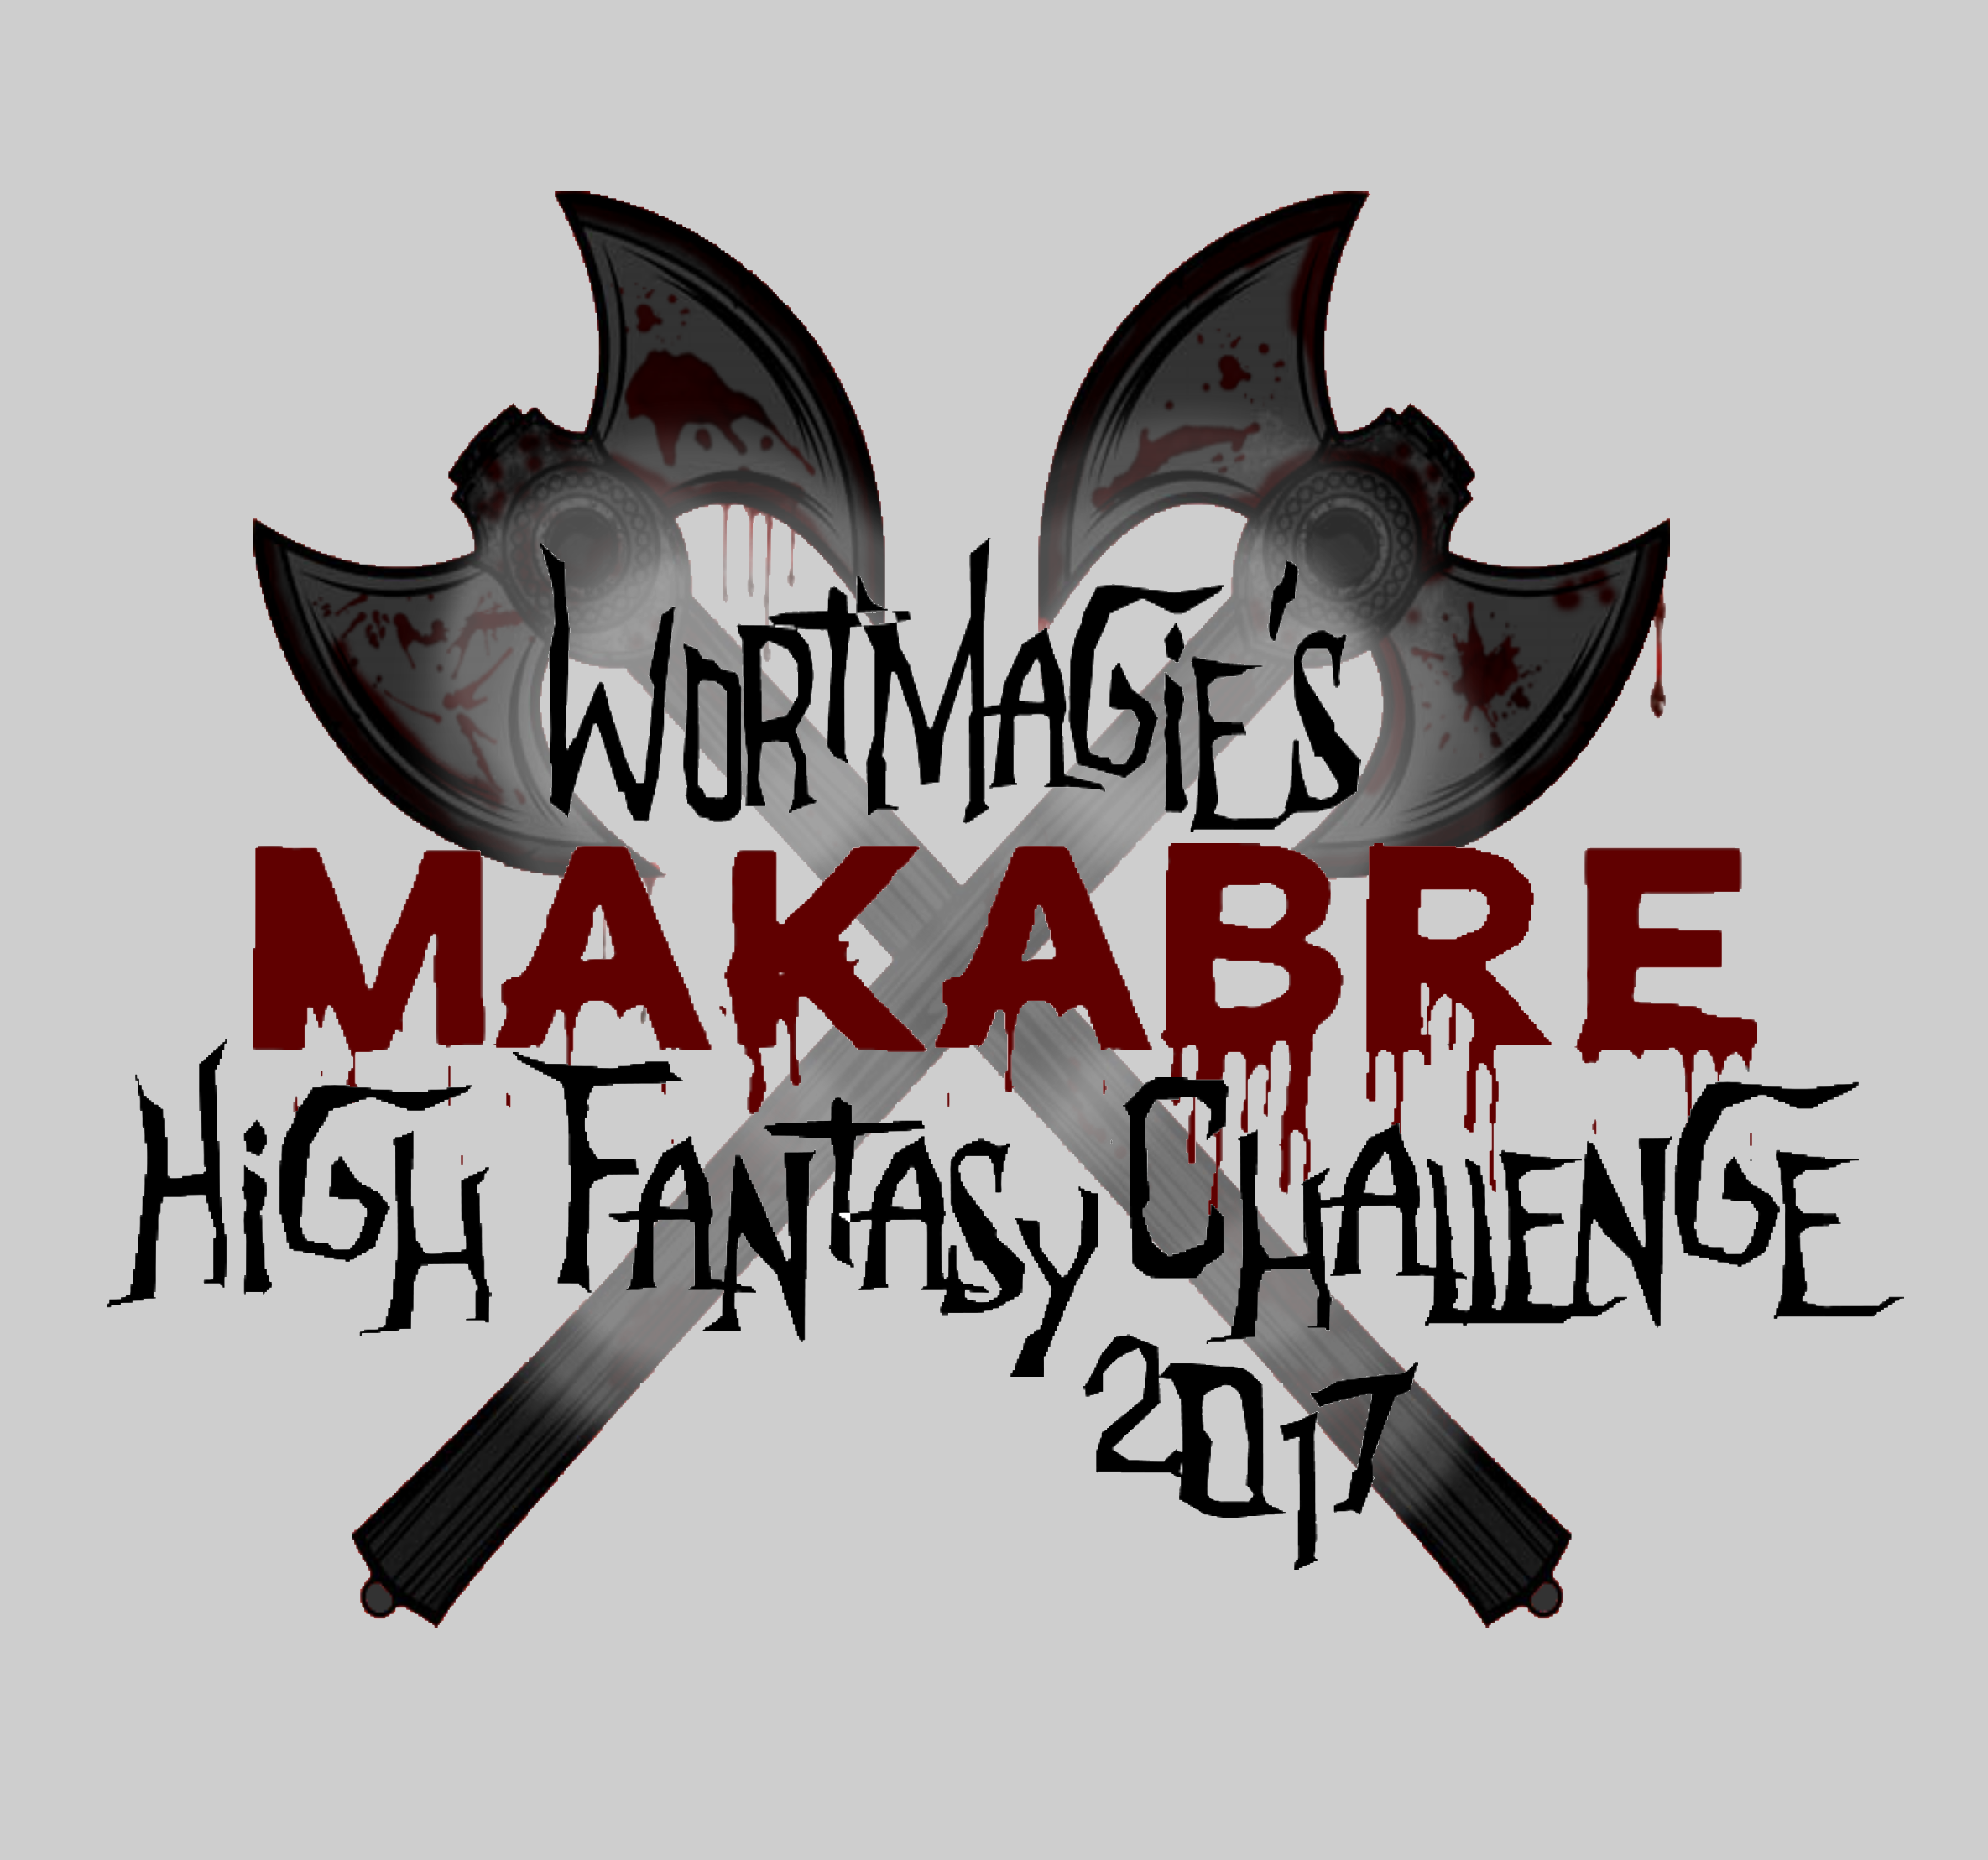 Wortmagie's makabre High Fantasy Challenge 2017